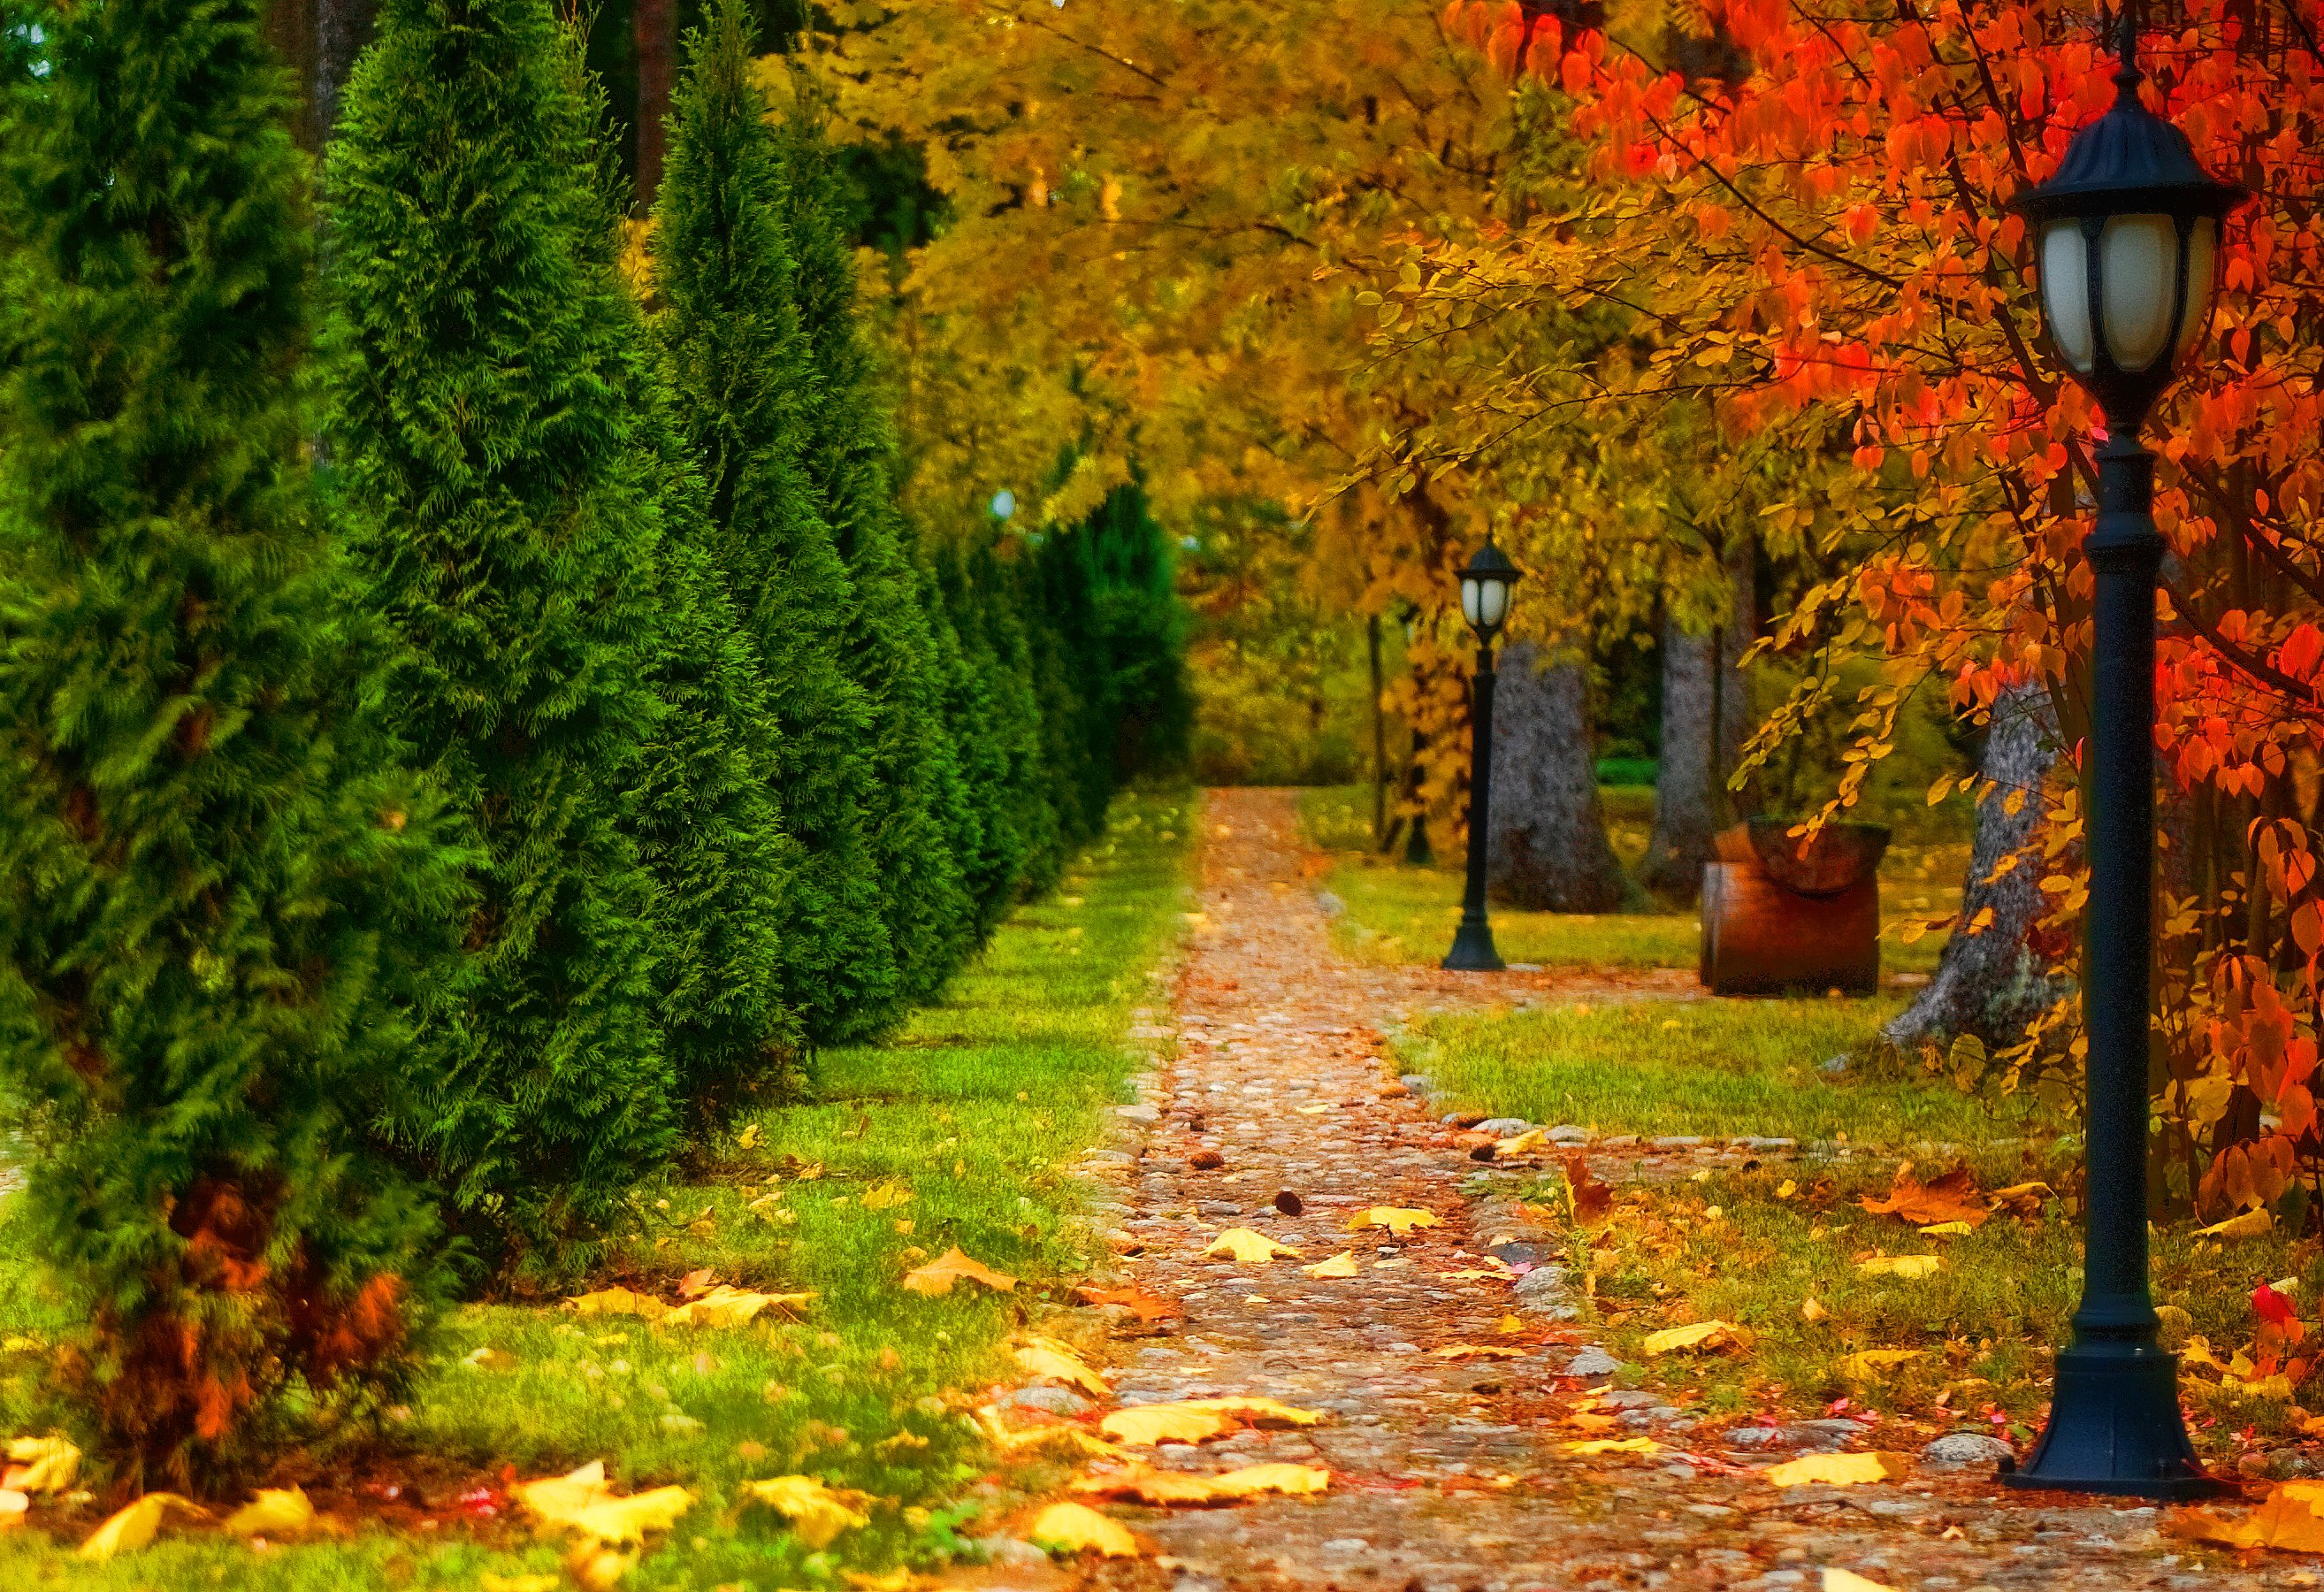 3d Tree Live Wallpaper Nature Landscape Autumn Road Trees Lantern Leaf Wallpaper